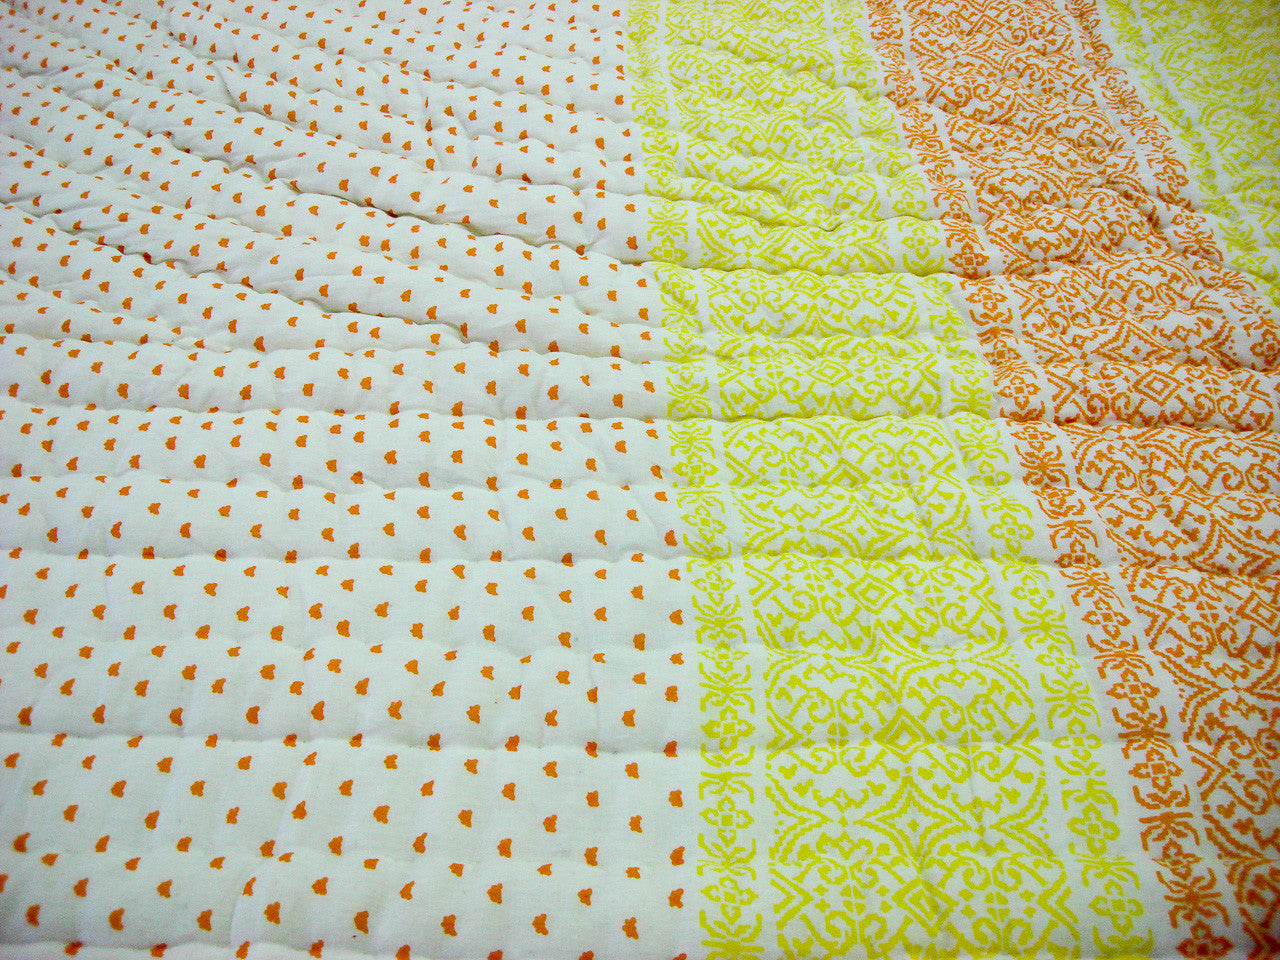 100% Handmade Cotton Queen Quilt - Yellow and Orange Prints - Pentagon Crafts